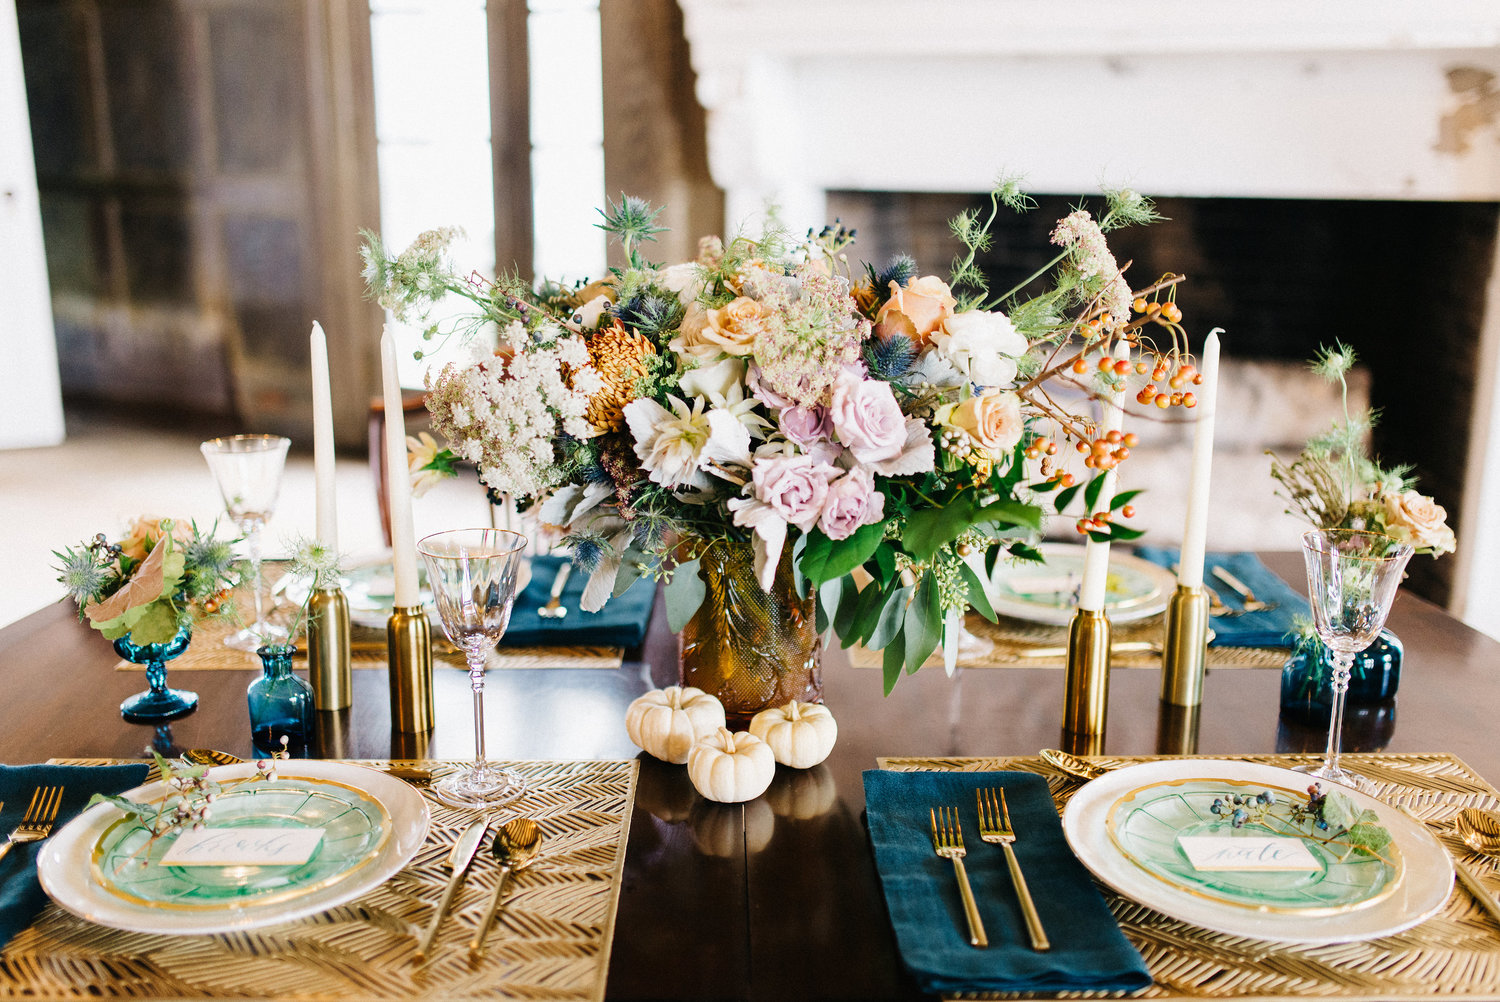 Table and Placesettings in Manor.jpg